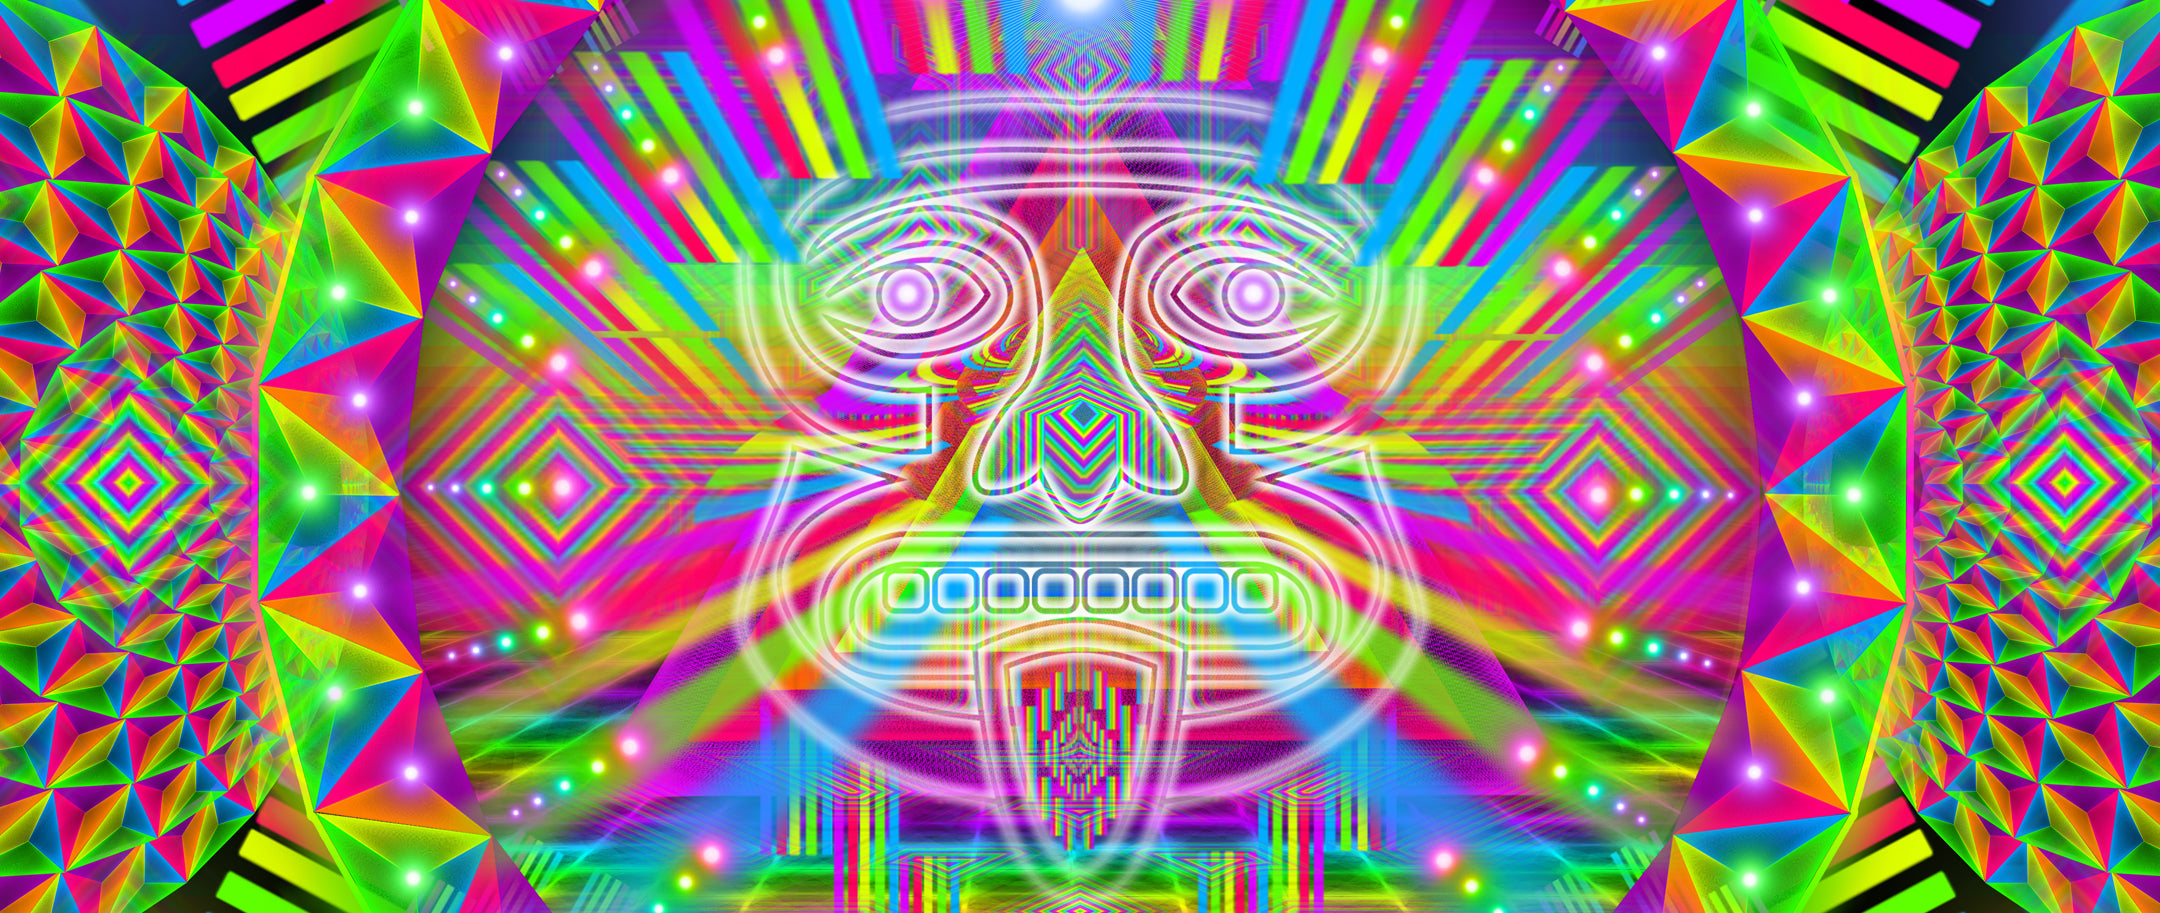 Psychedelic Visionary Art & Clothing for Psychonauts, Ayahuasca, DMT Enthusiasts